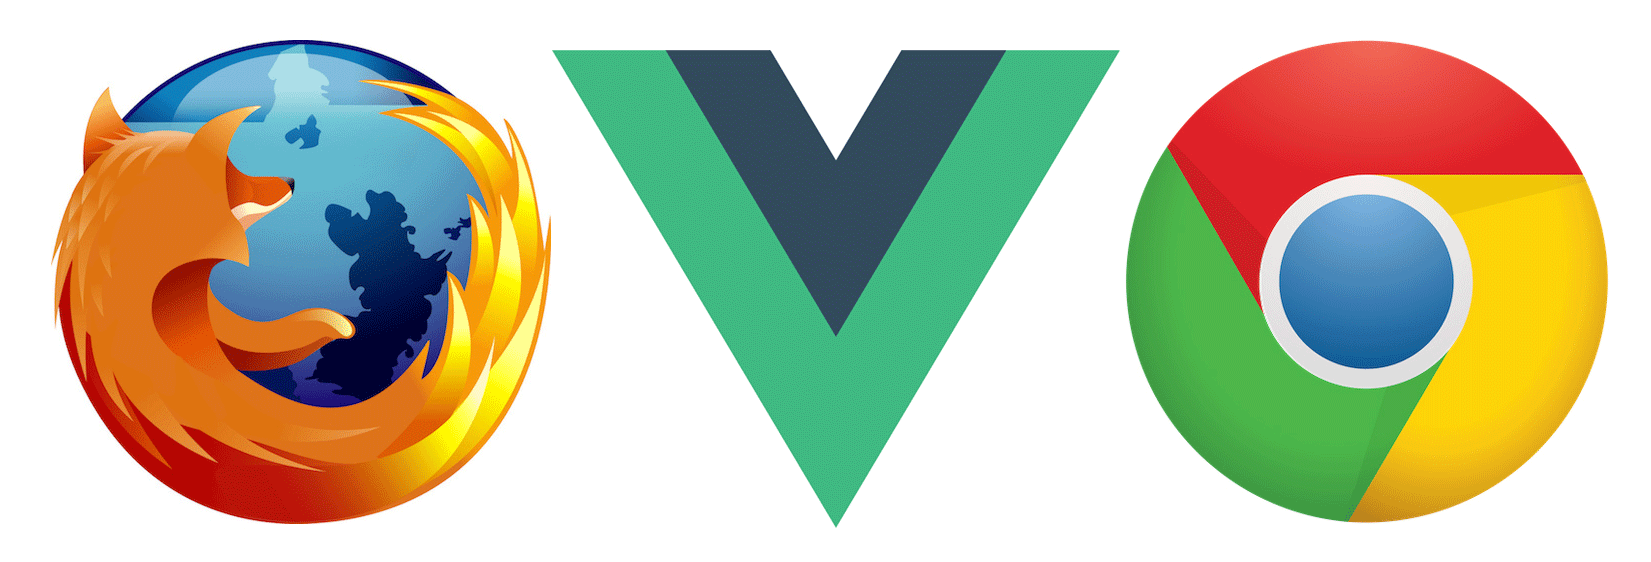 How I built a browser extension with Vue (Part 1